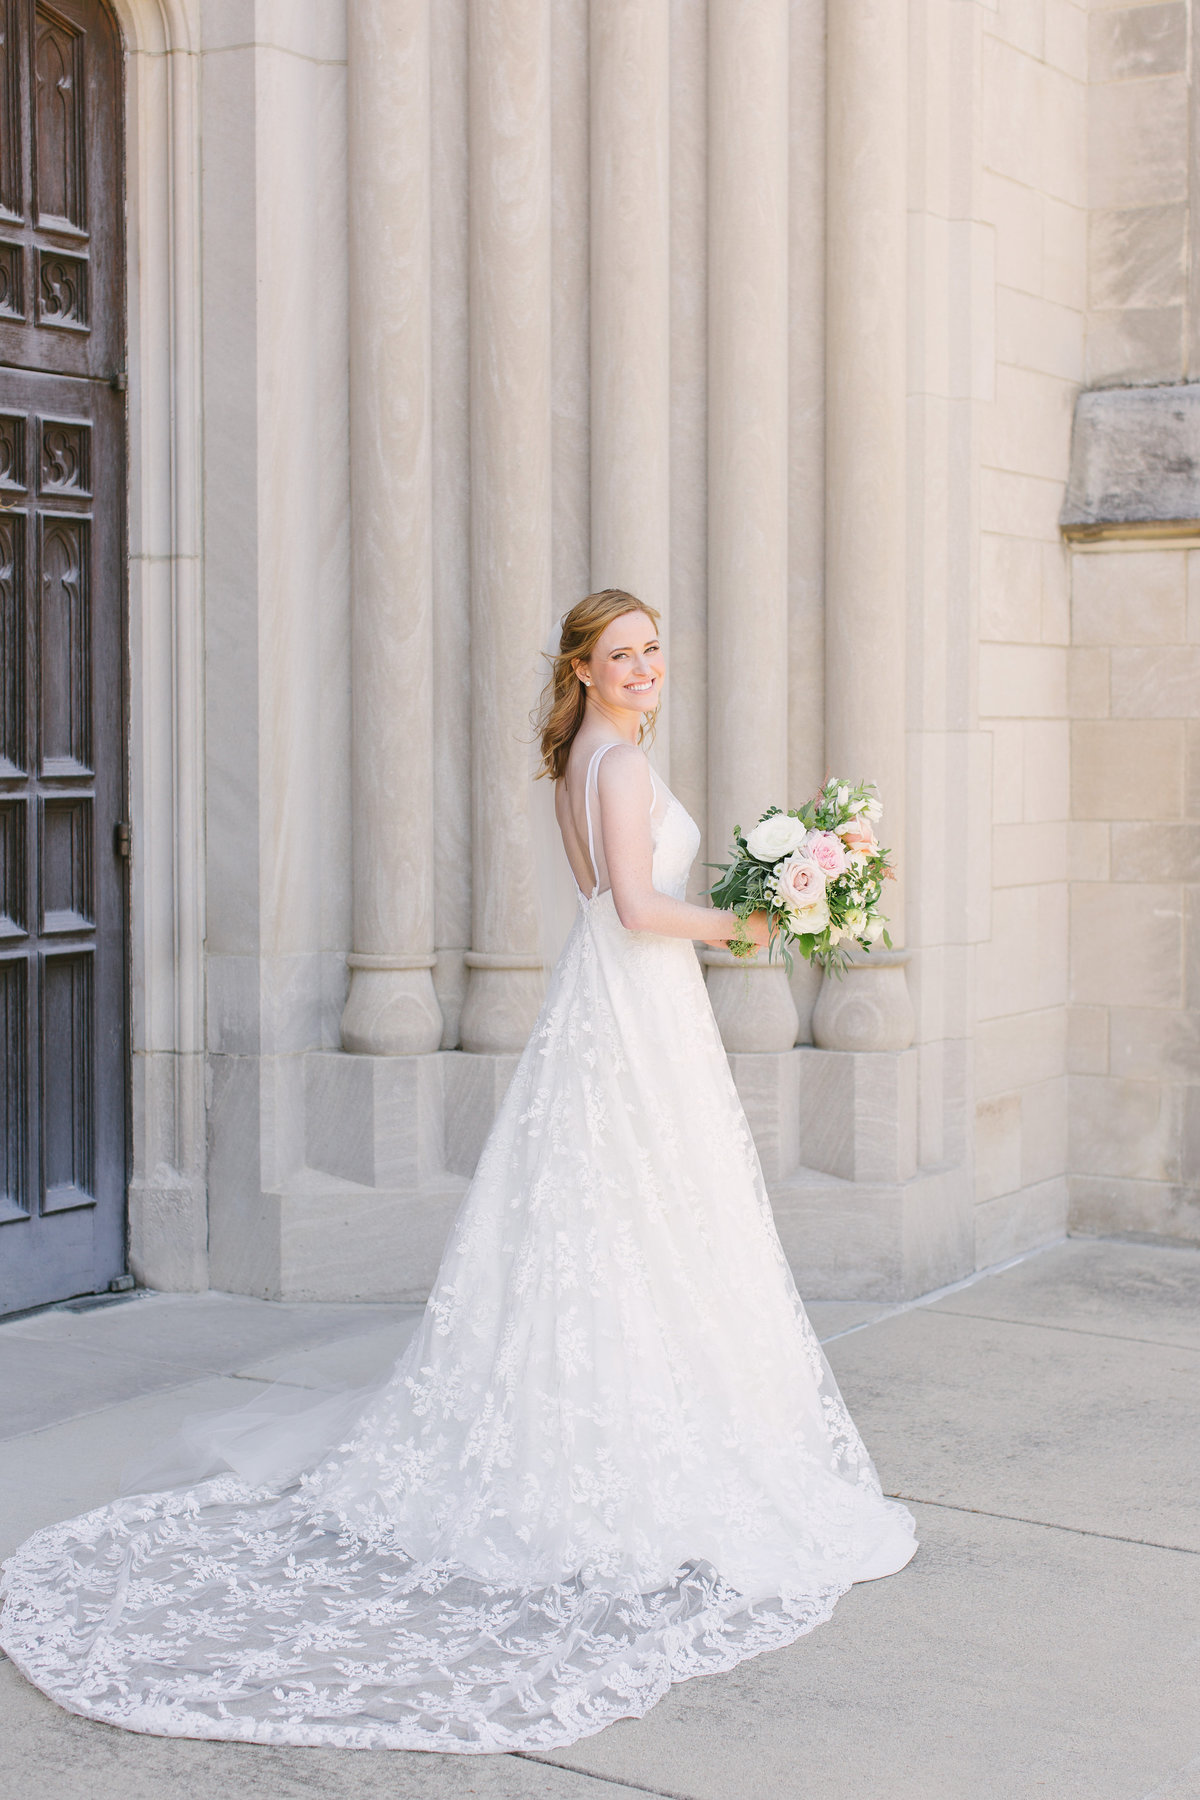 Scottish Rite Cathedral Wedding Lace Wedding Custom Bridal Gown Photo